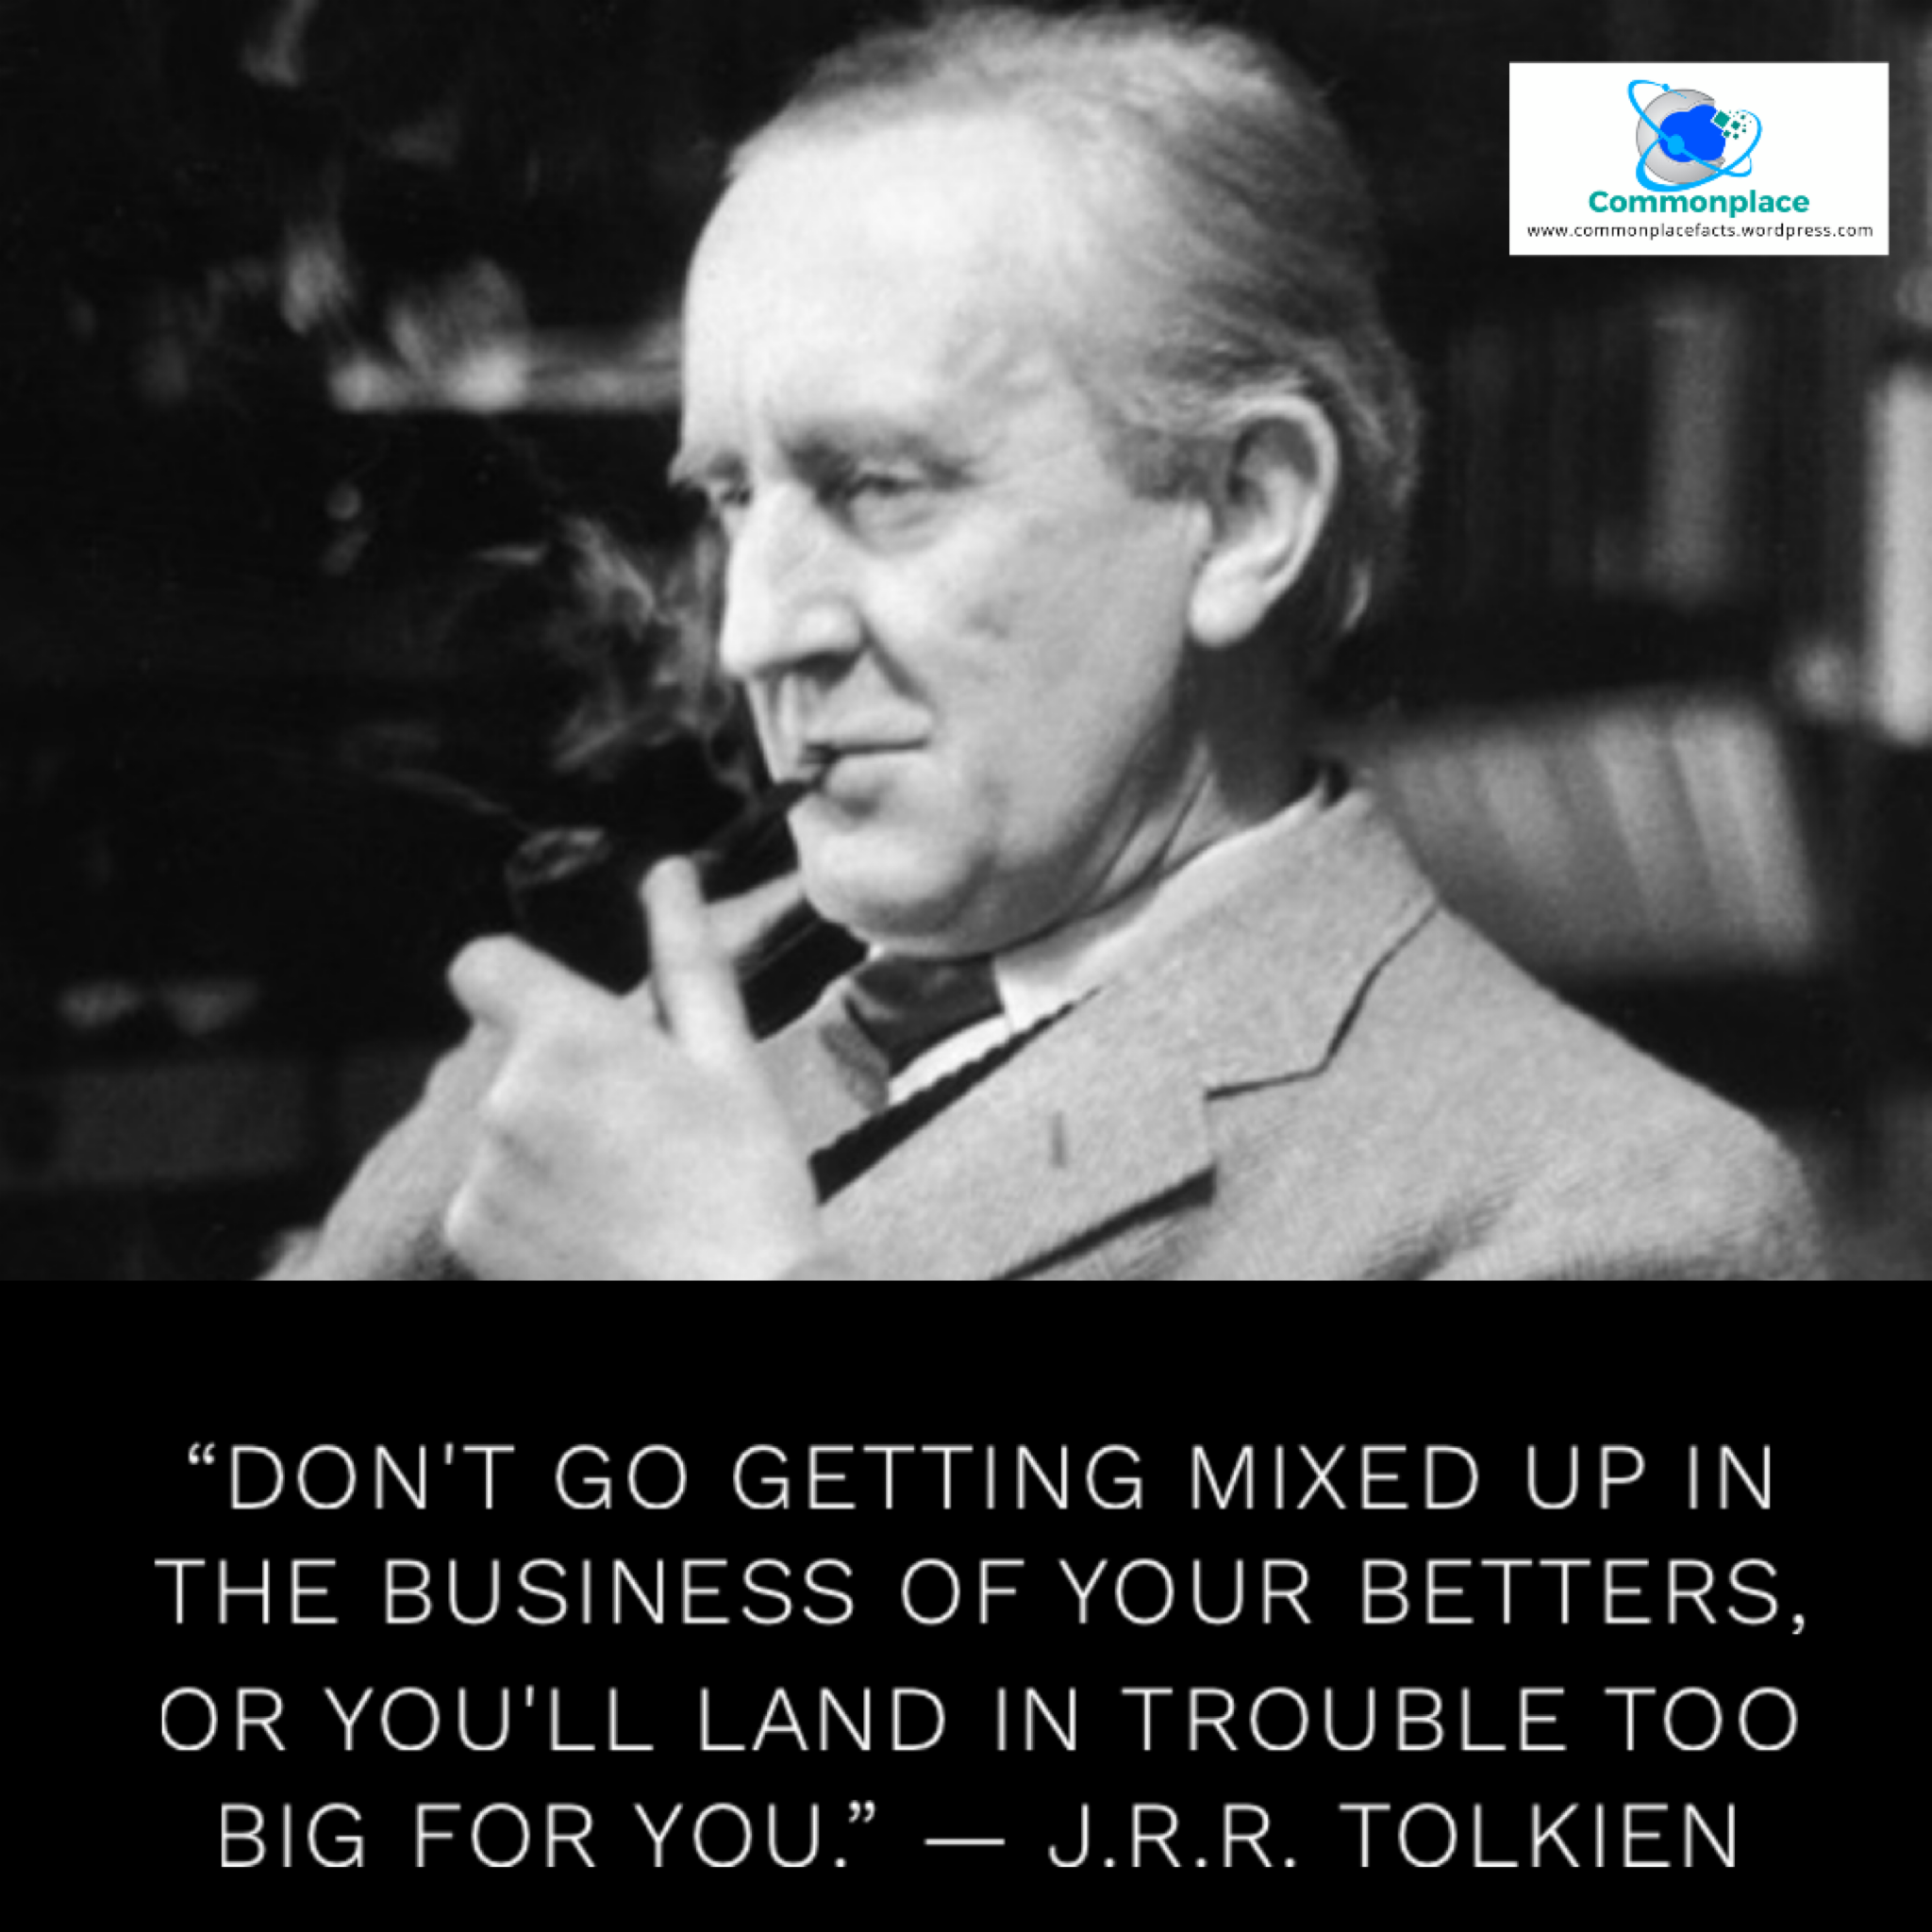 """Don't go getting mixed up in the business of your betters, or you'll land in trouble too big for you."" — J.R.R. Tolkien"